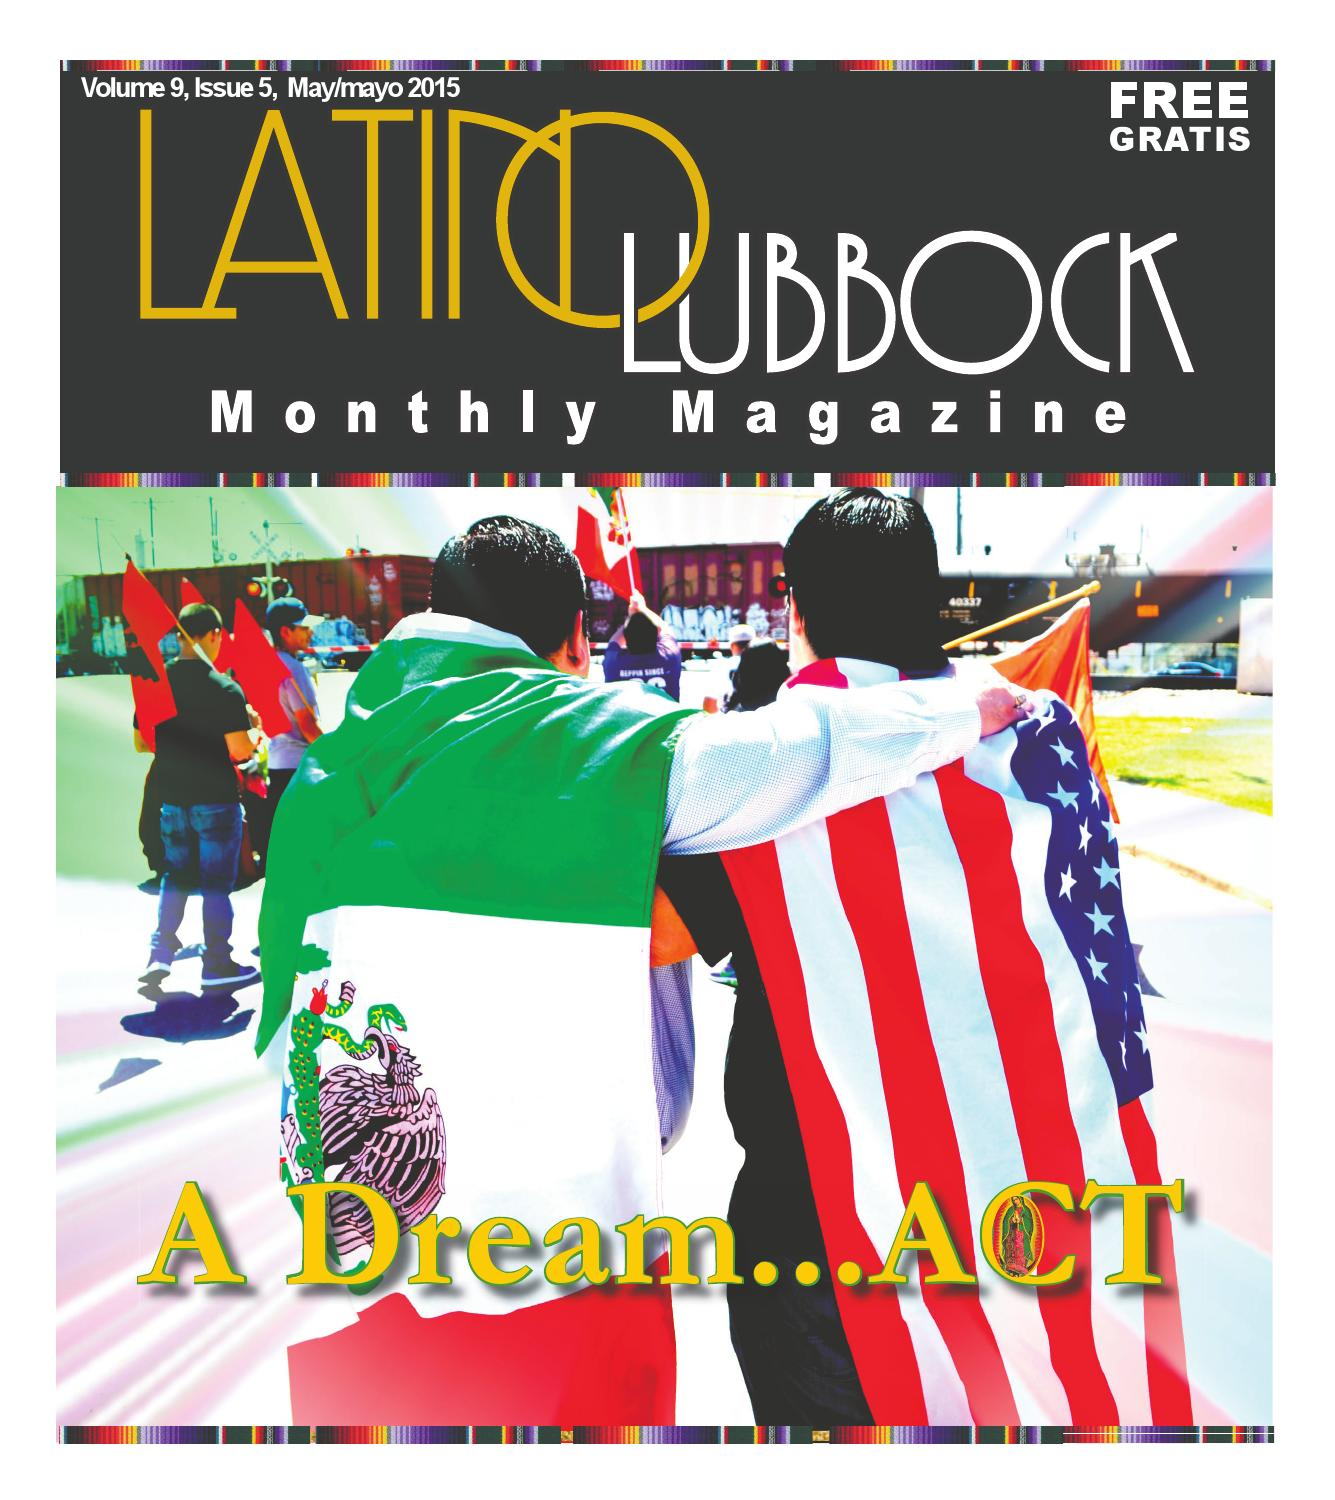 May Latino Lubbock Vol 9, Issue 5 by Christy Martinez-Garcia